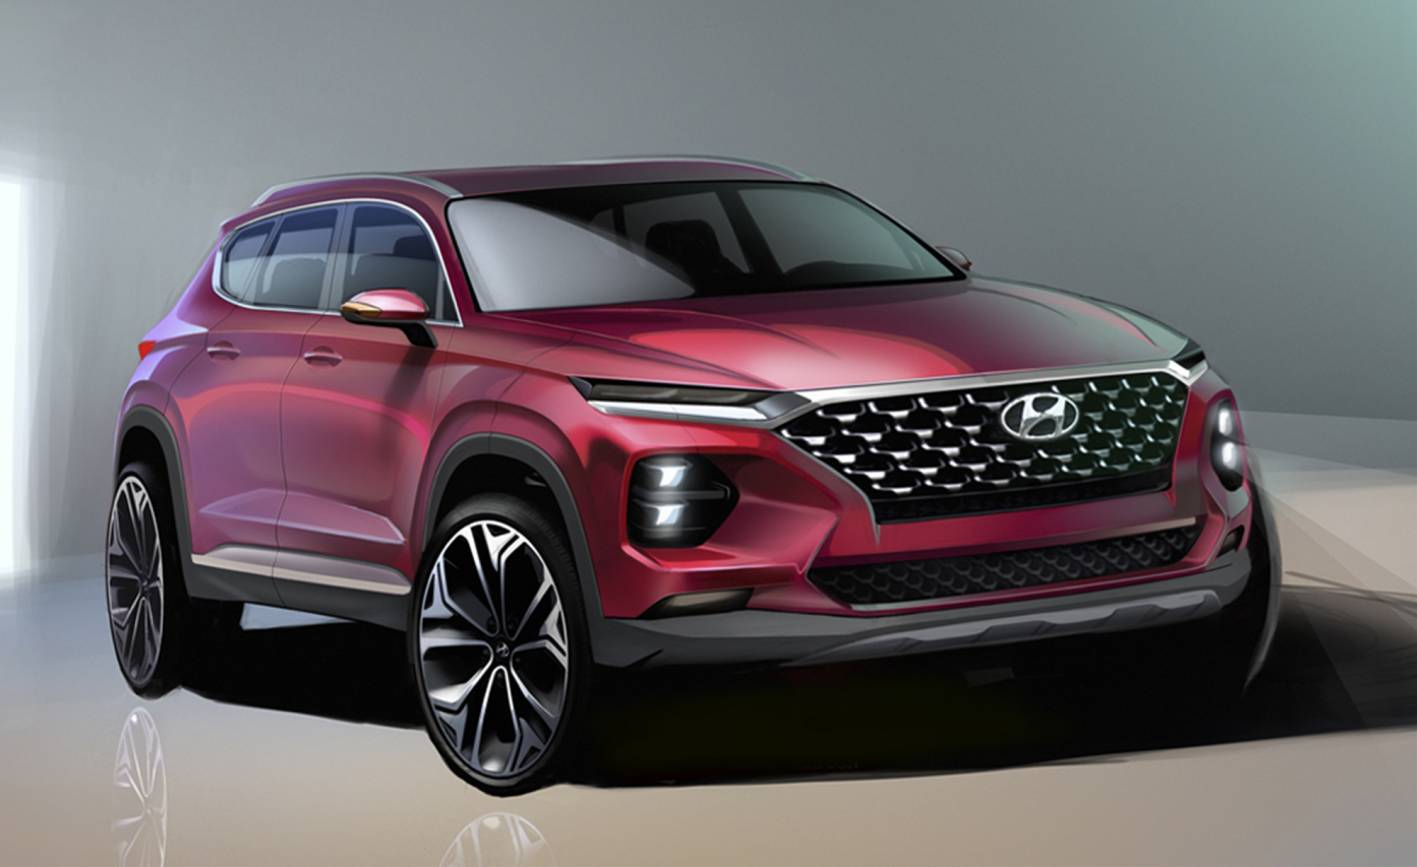 First look: 2019 Hyundai Santa Fe - ForceGT.com